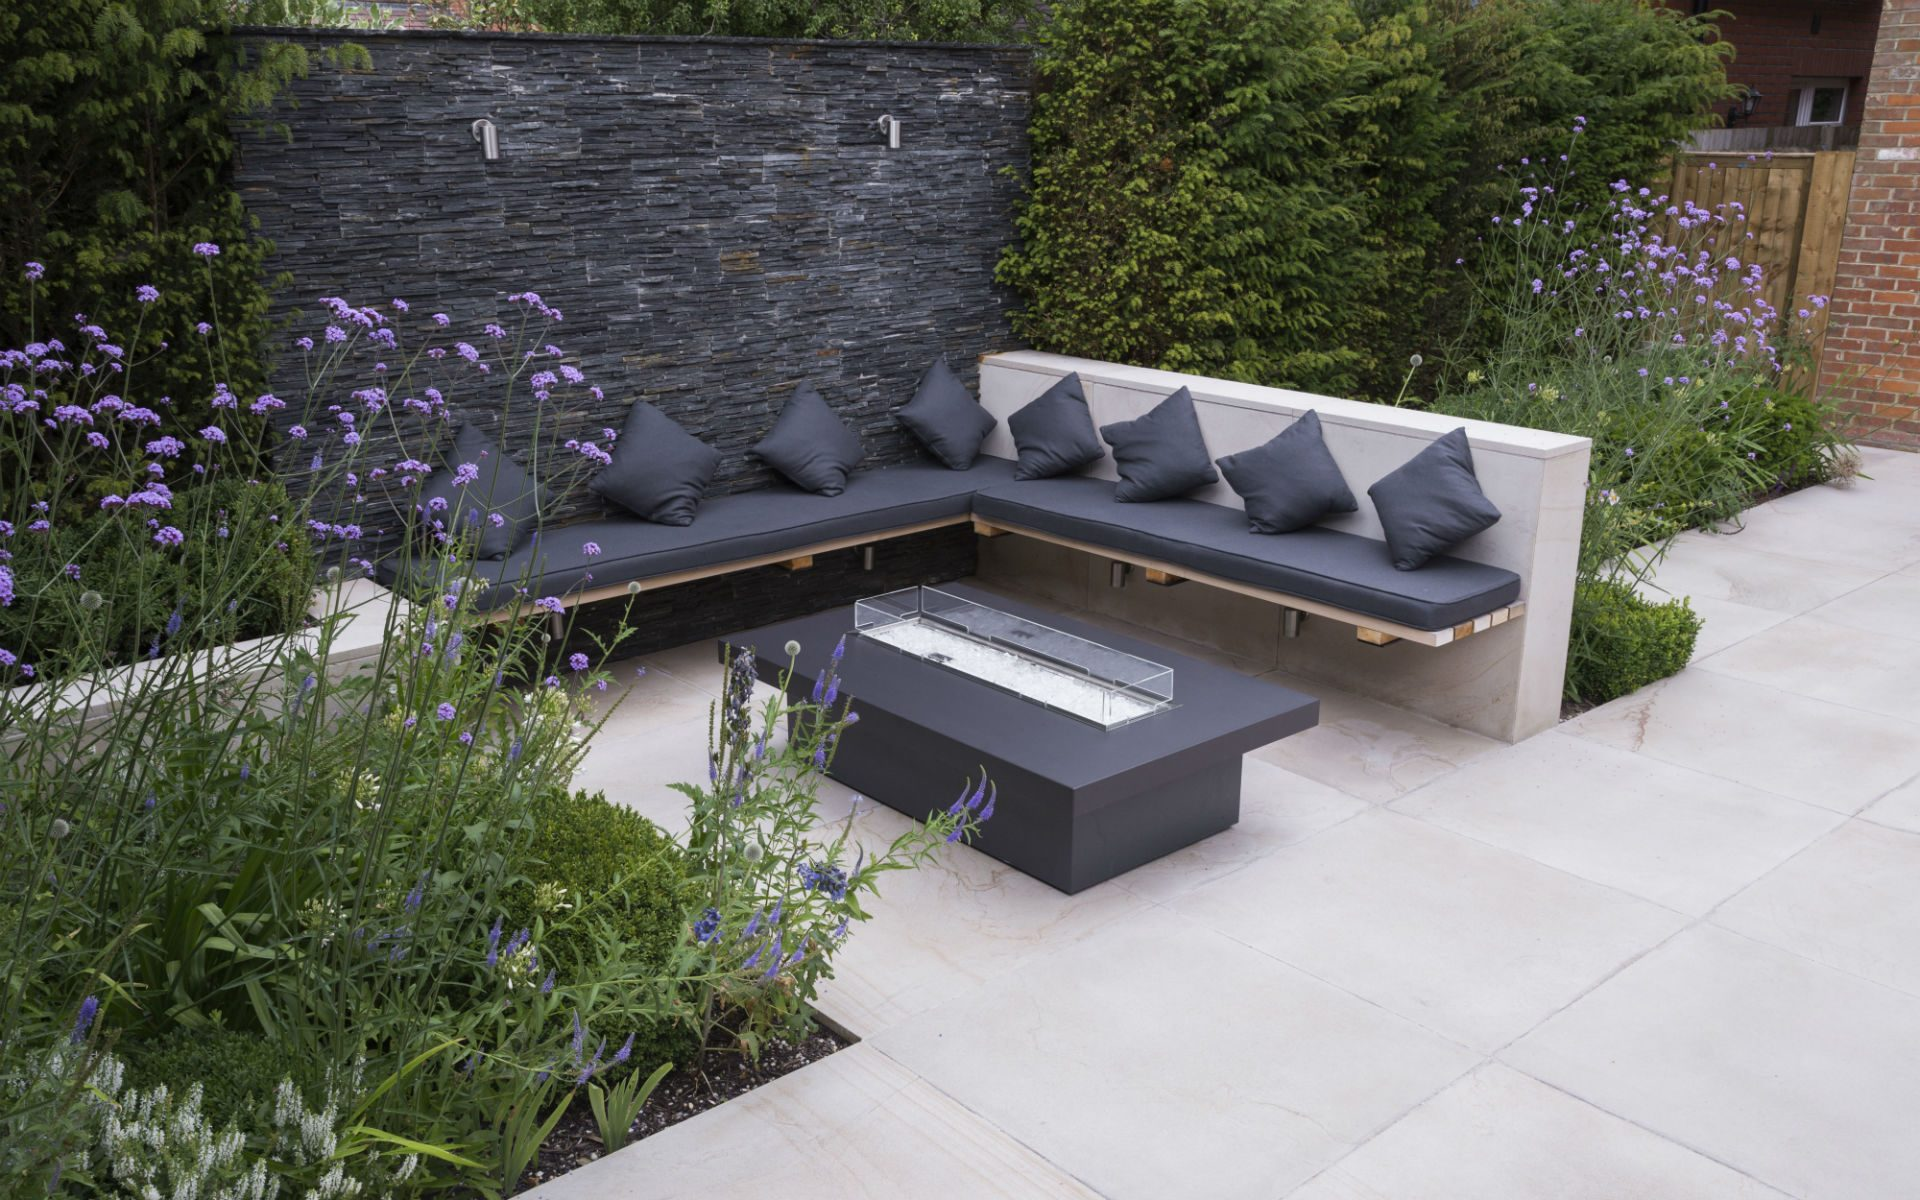 Contemporary Living Garden and Courtyard Shenfield Essex Feature Wall Bespoke Seating Firetable Area